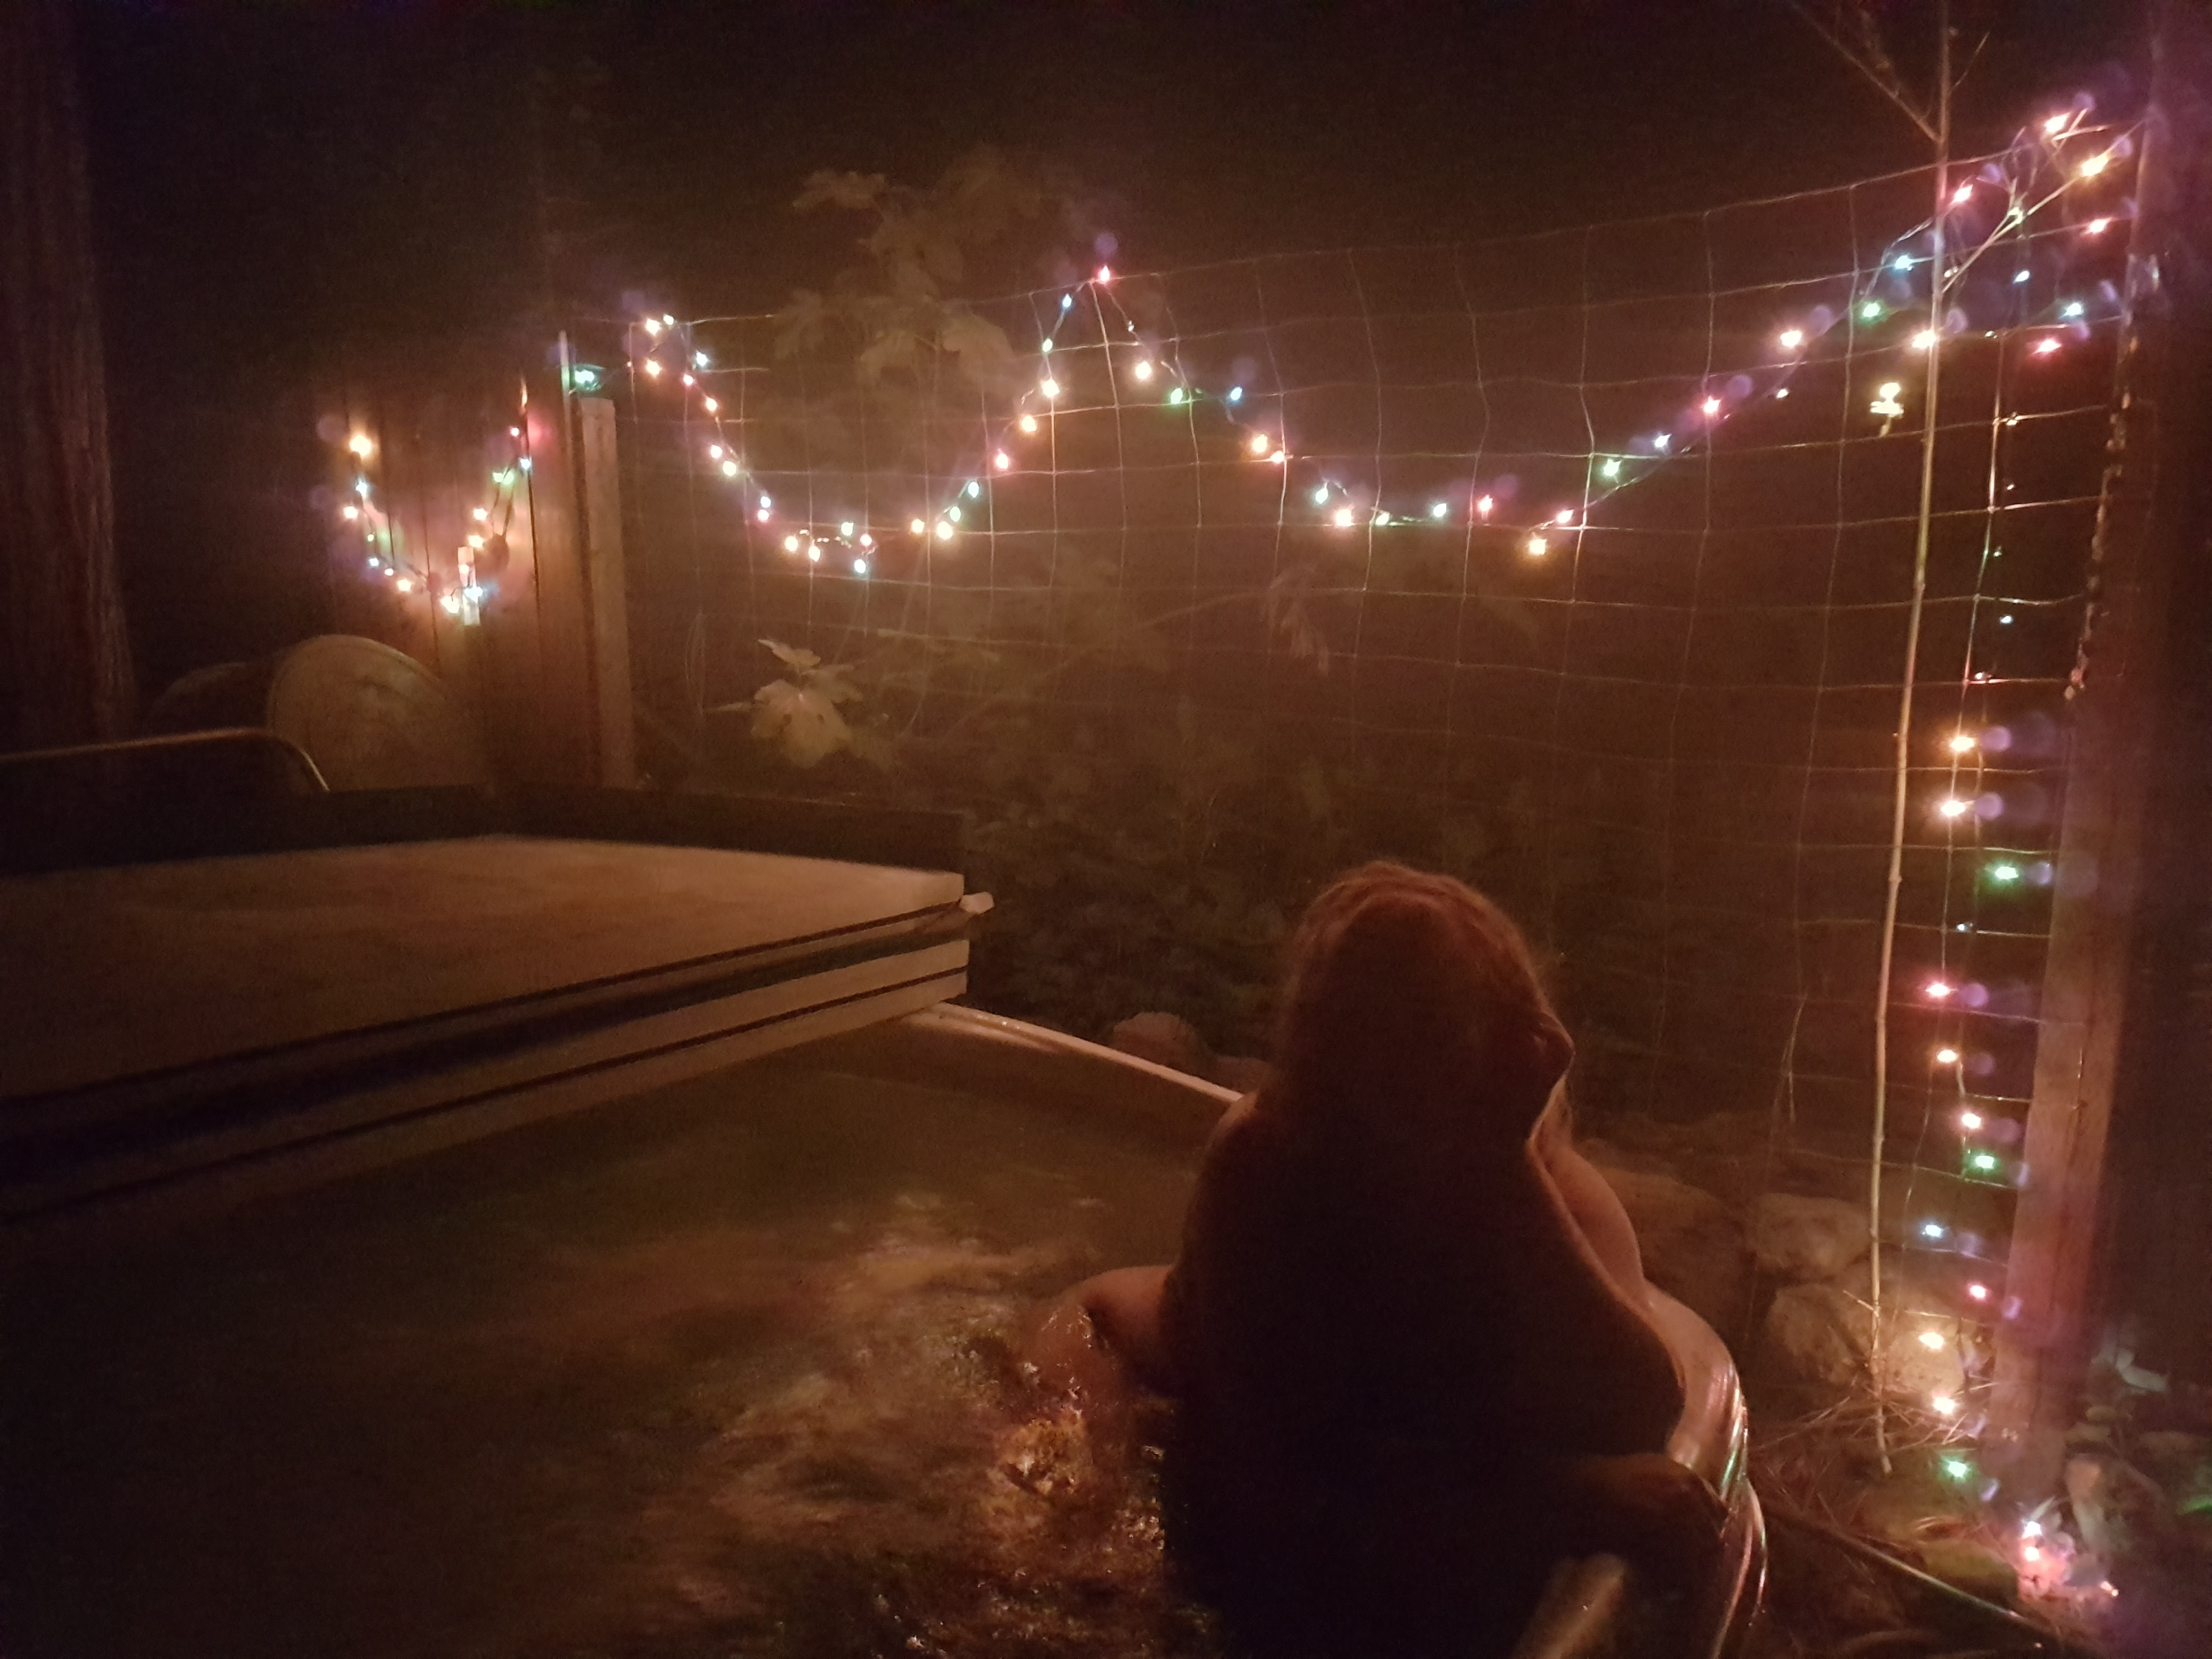 cute babe in hot tube with fairy lights